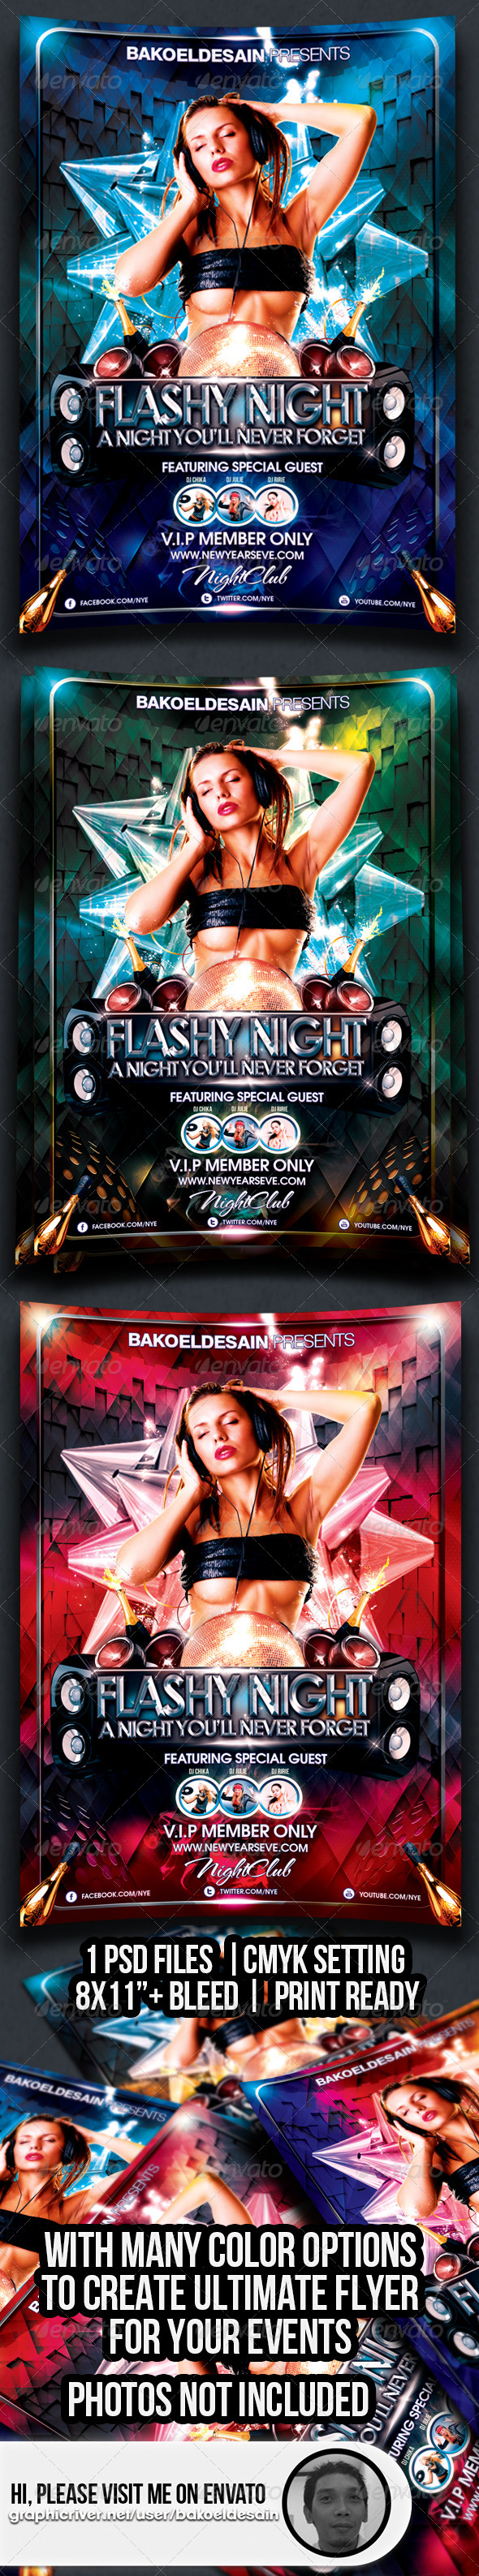 Flashy Night Party Flyer - Clubs & Parties Events